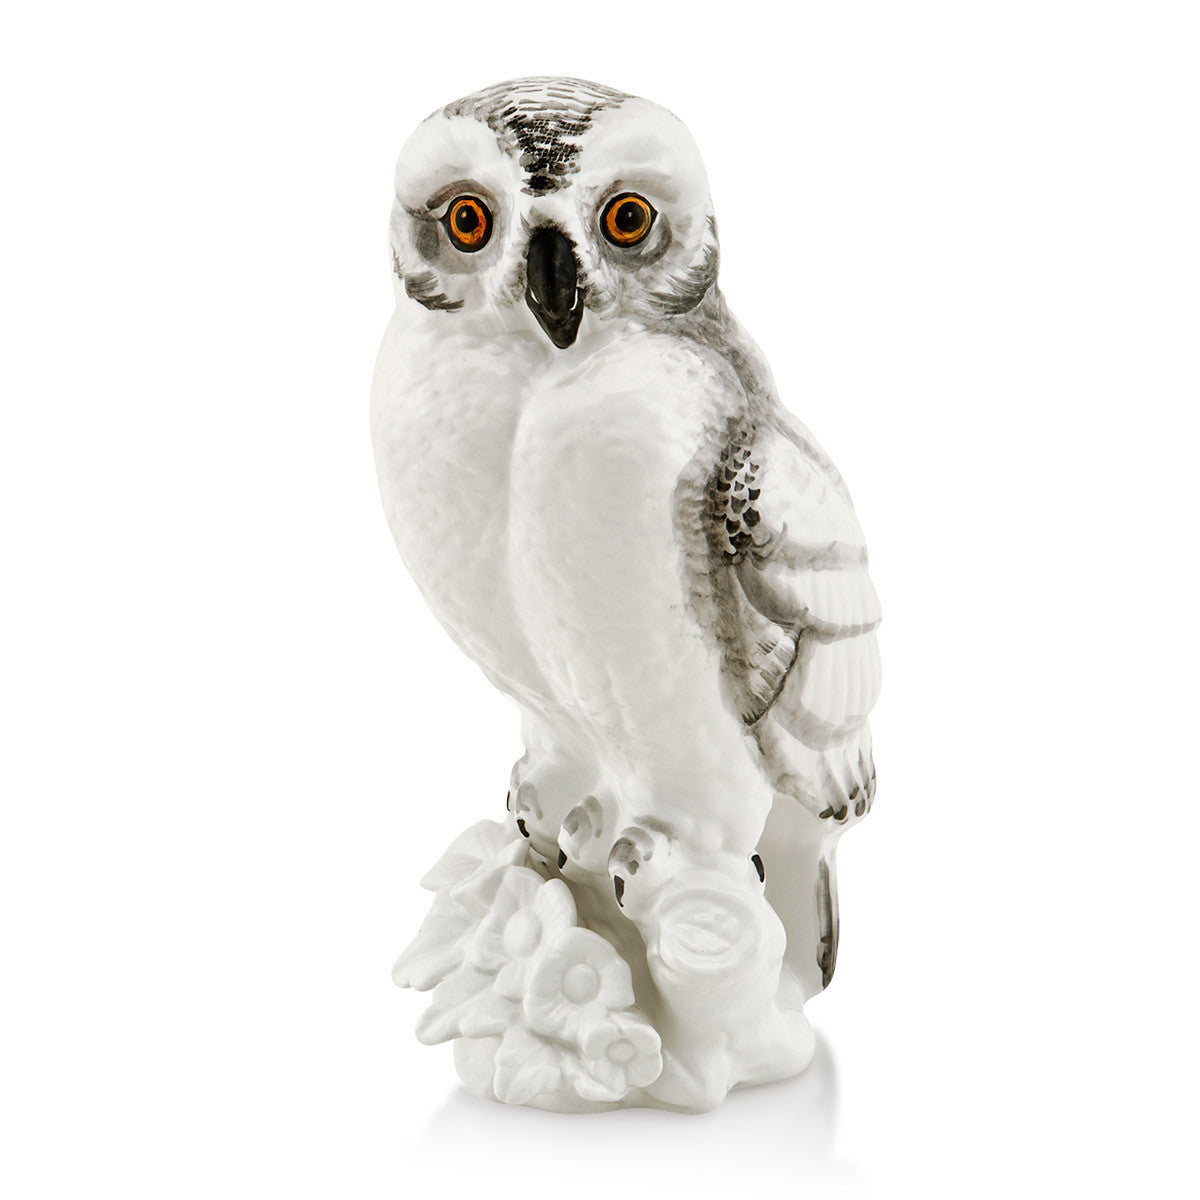 Hand-painted ceramic porcelain owl finished in natural colors handmade in Italy